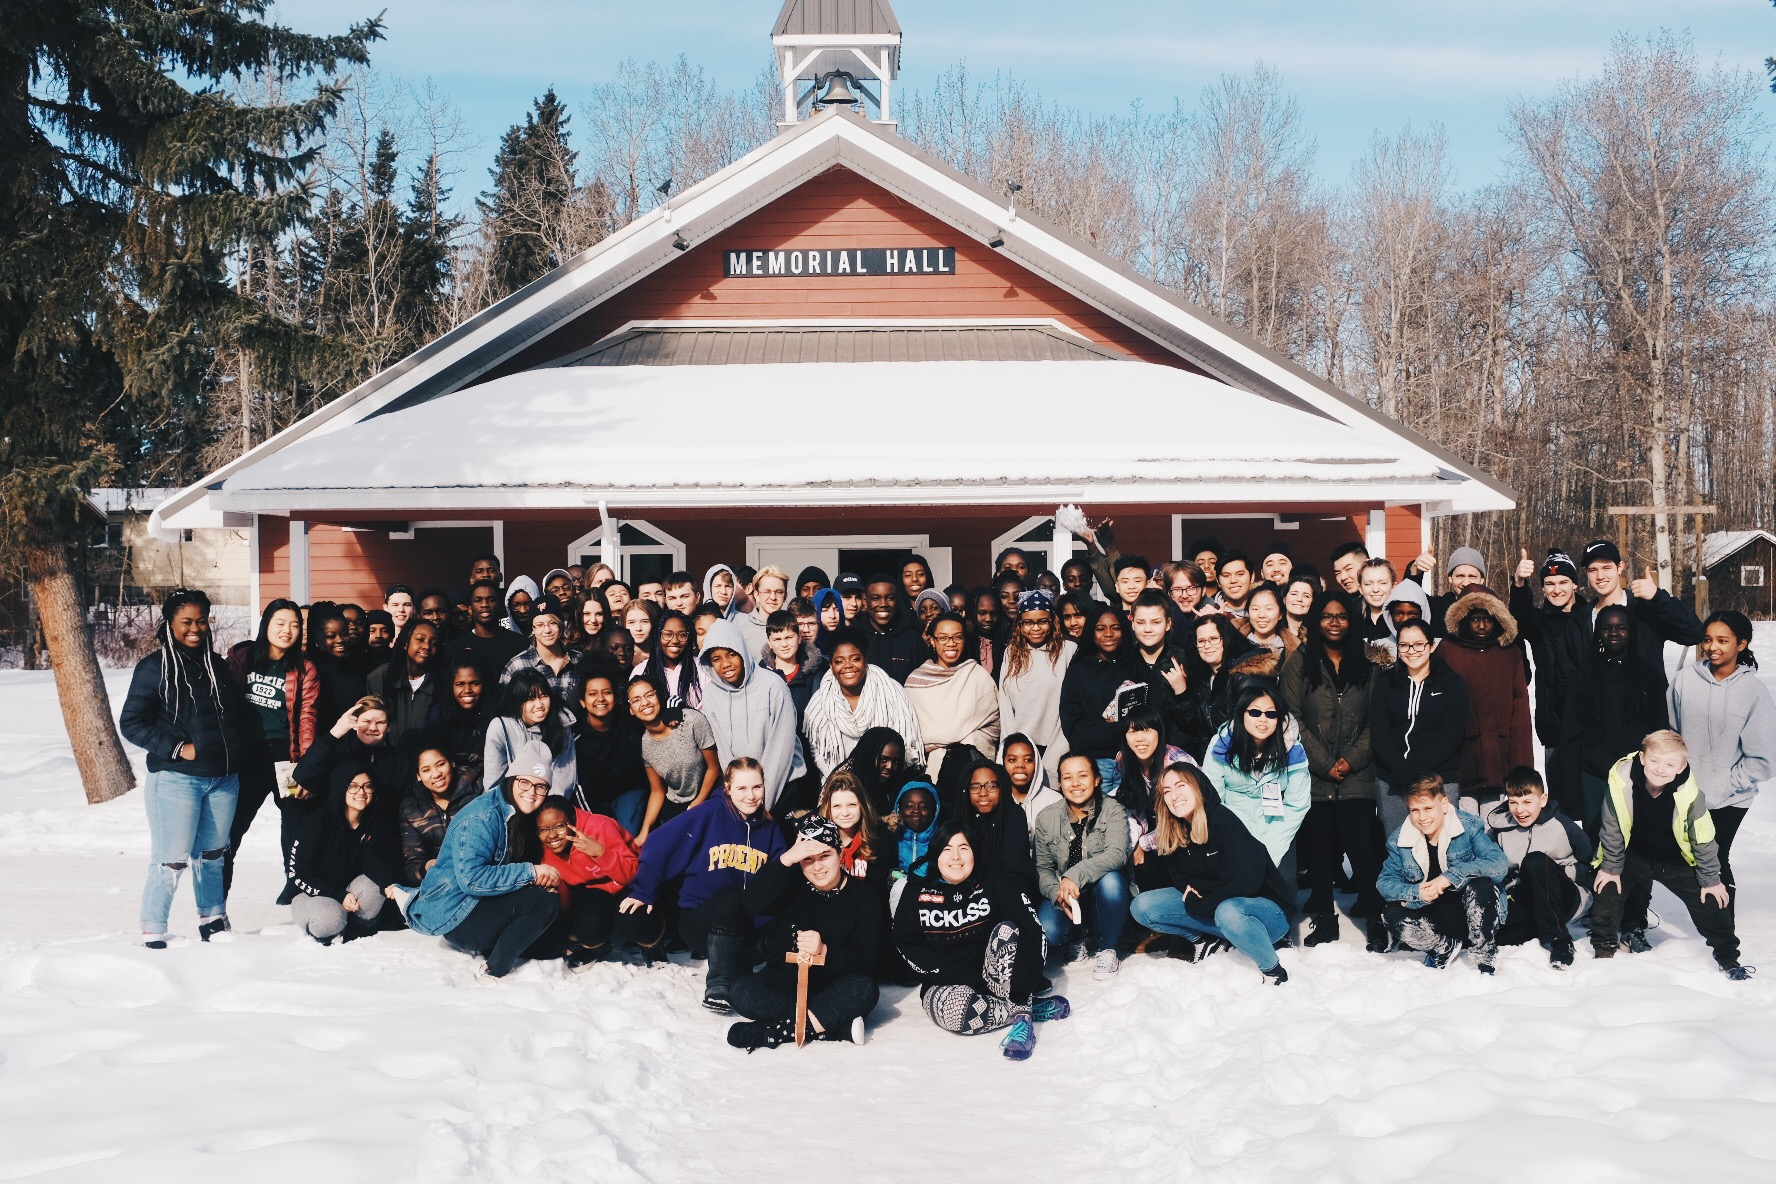 Get away and get with God. - We love retreats. They are the best way for students and leaders to get away from the busyness of life long enough to experience a distraction-free atmosphere where they can deepen their relationship with God and each other.